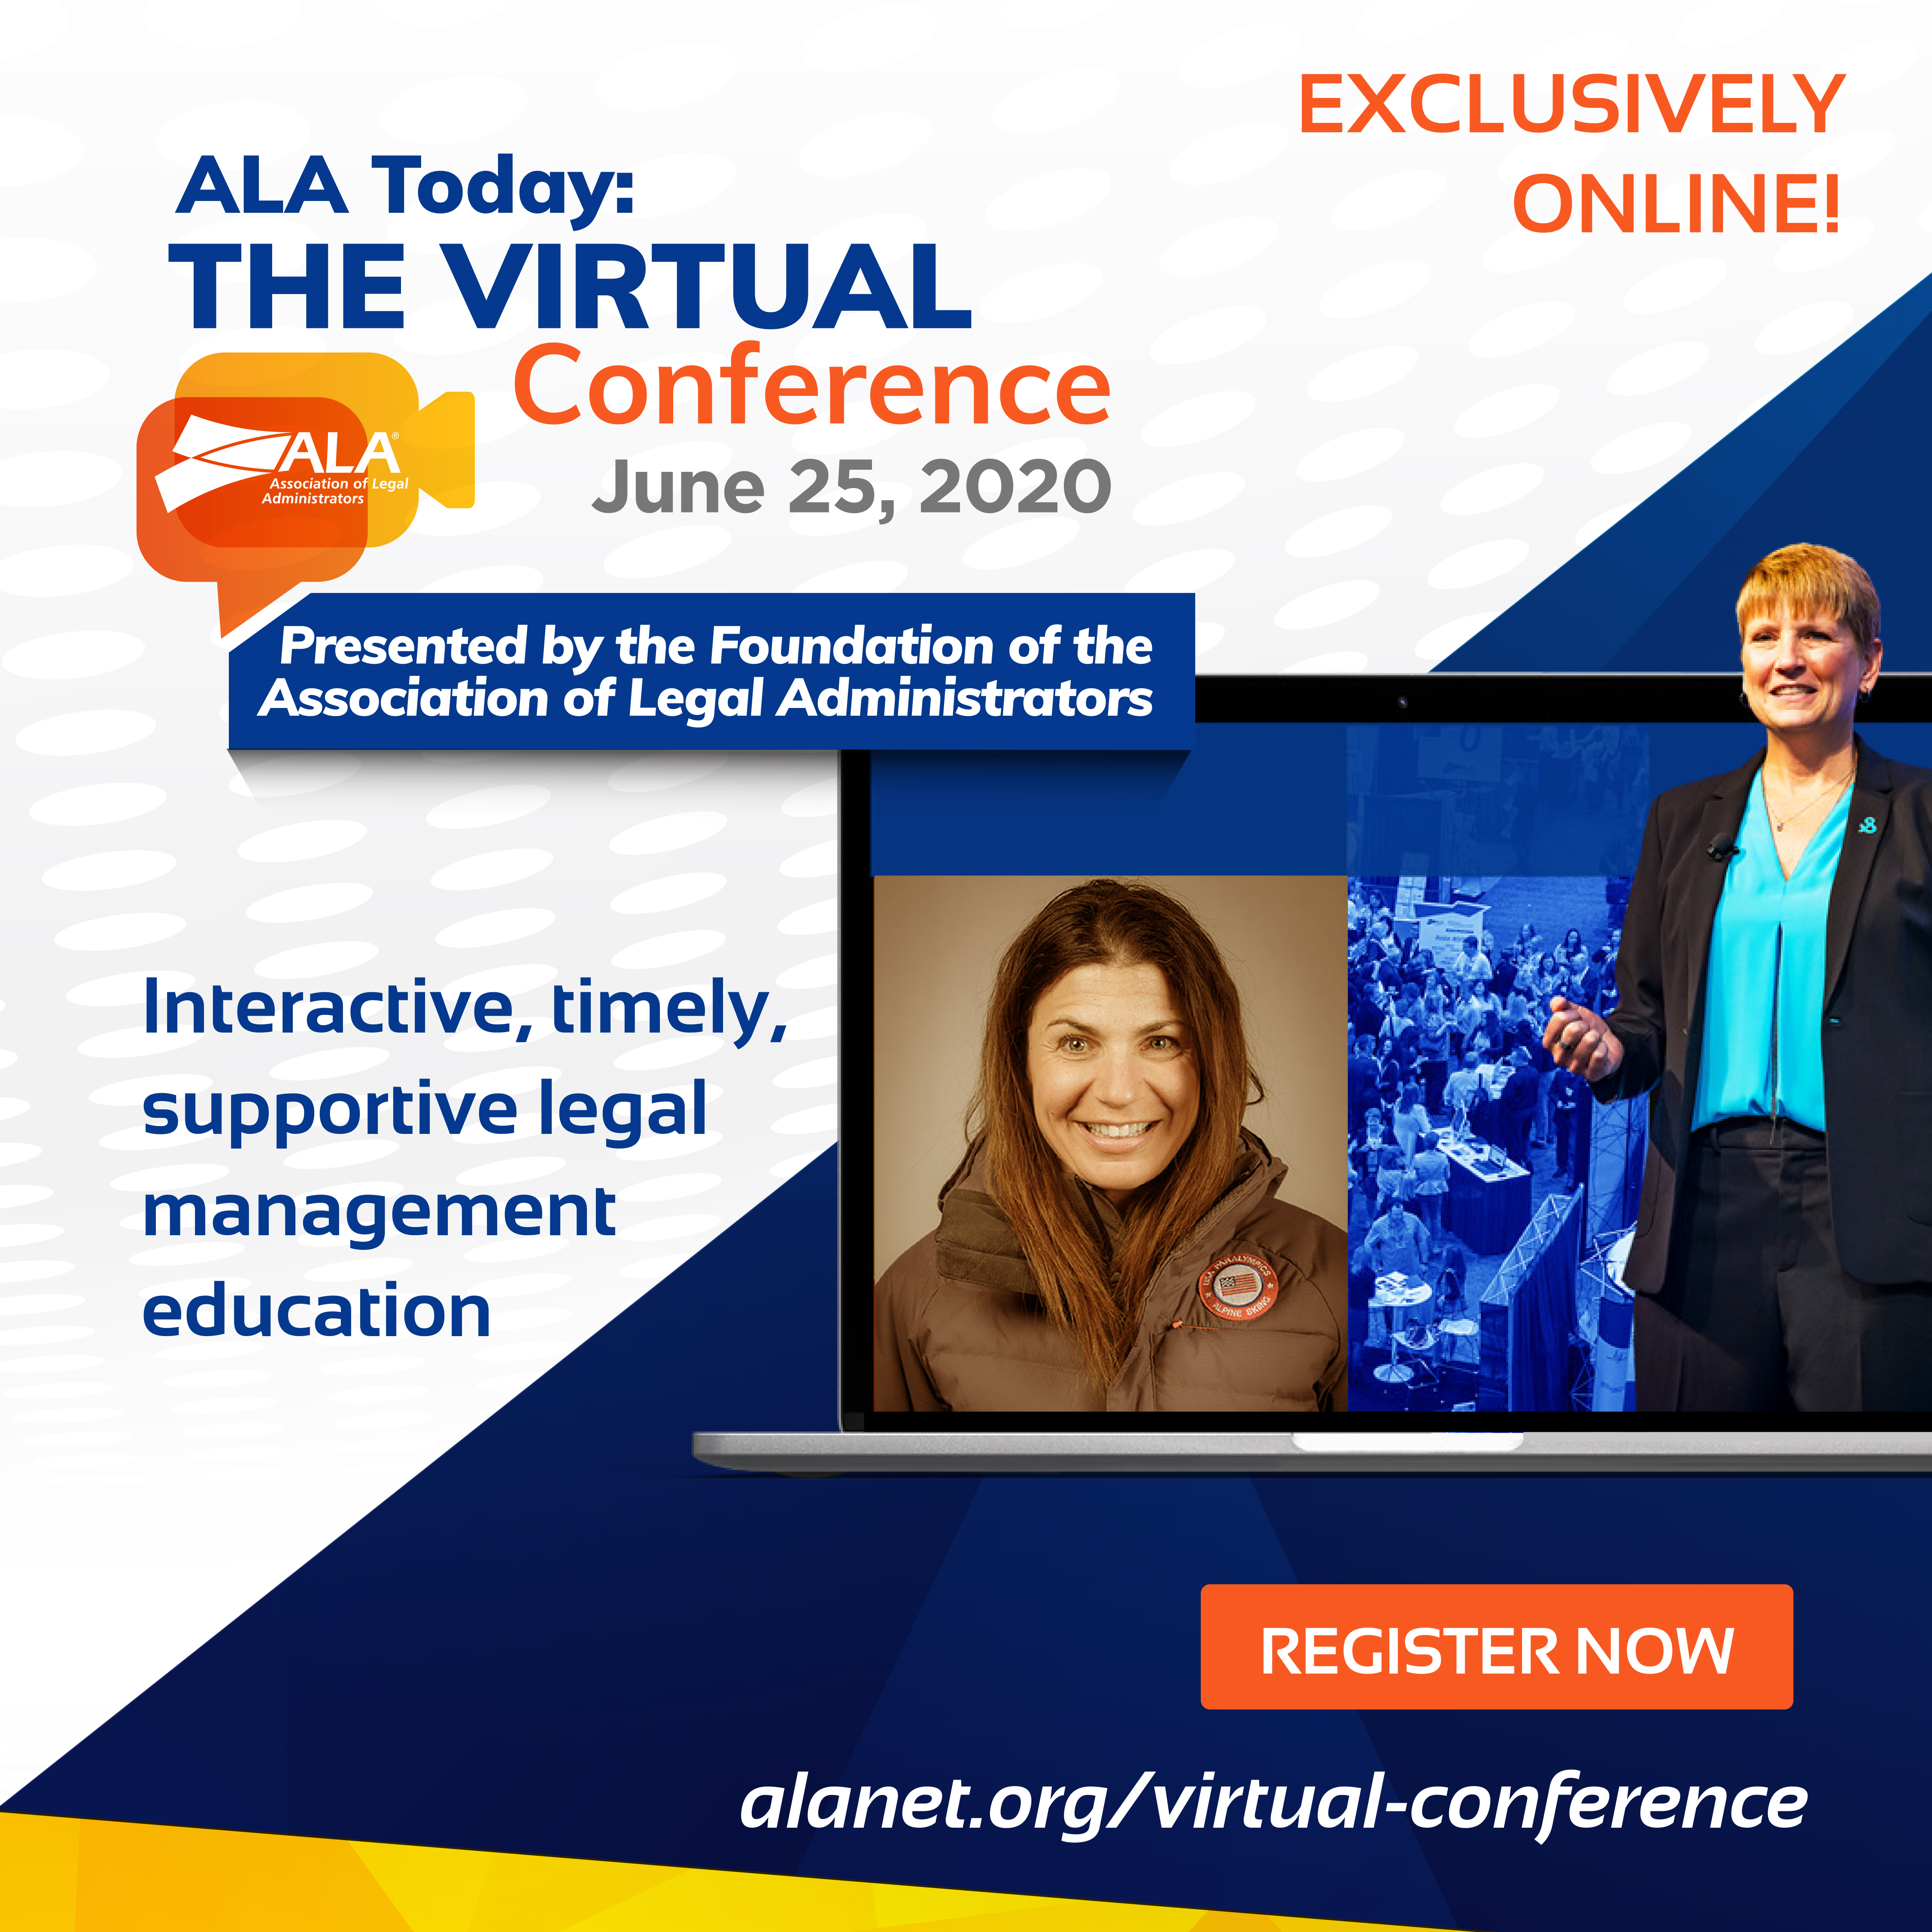 2020-ALA-Today-Virtual-Conference-Register-1080x1080